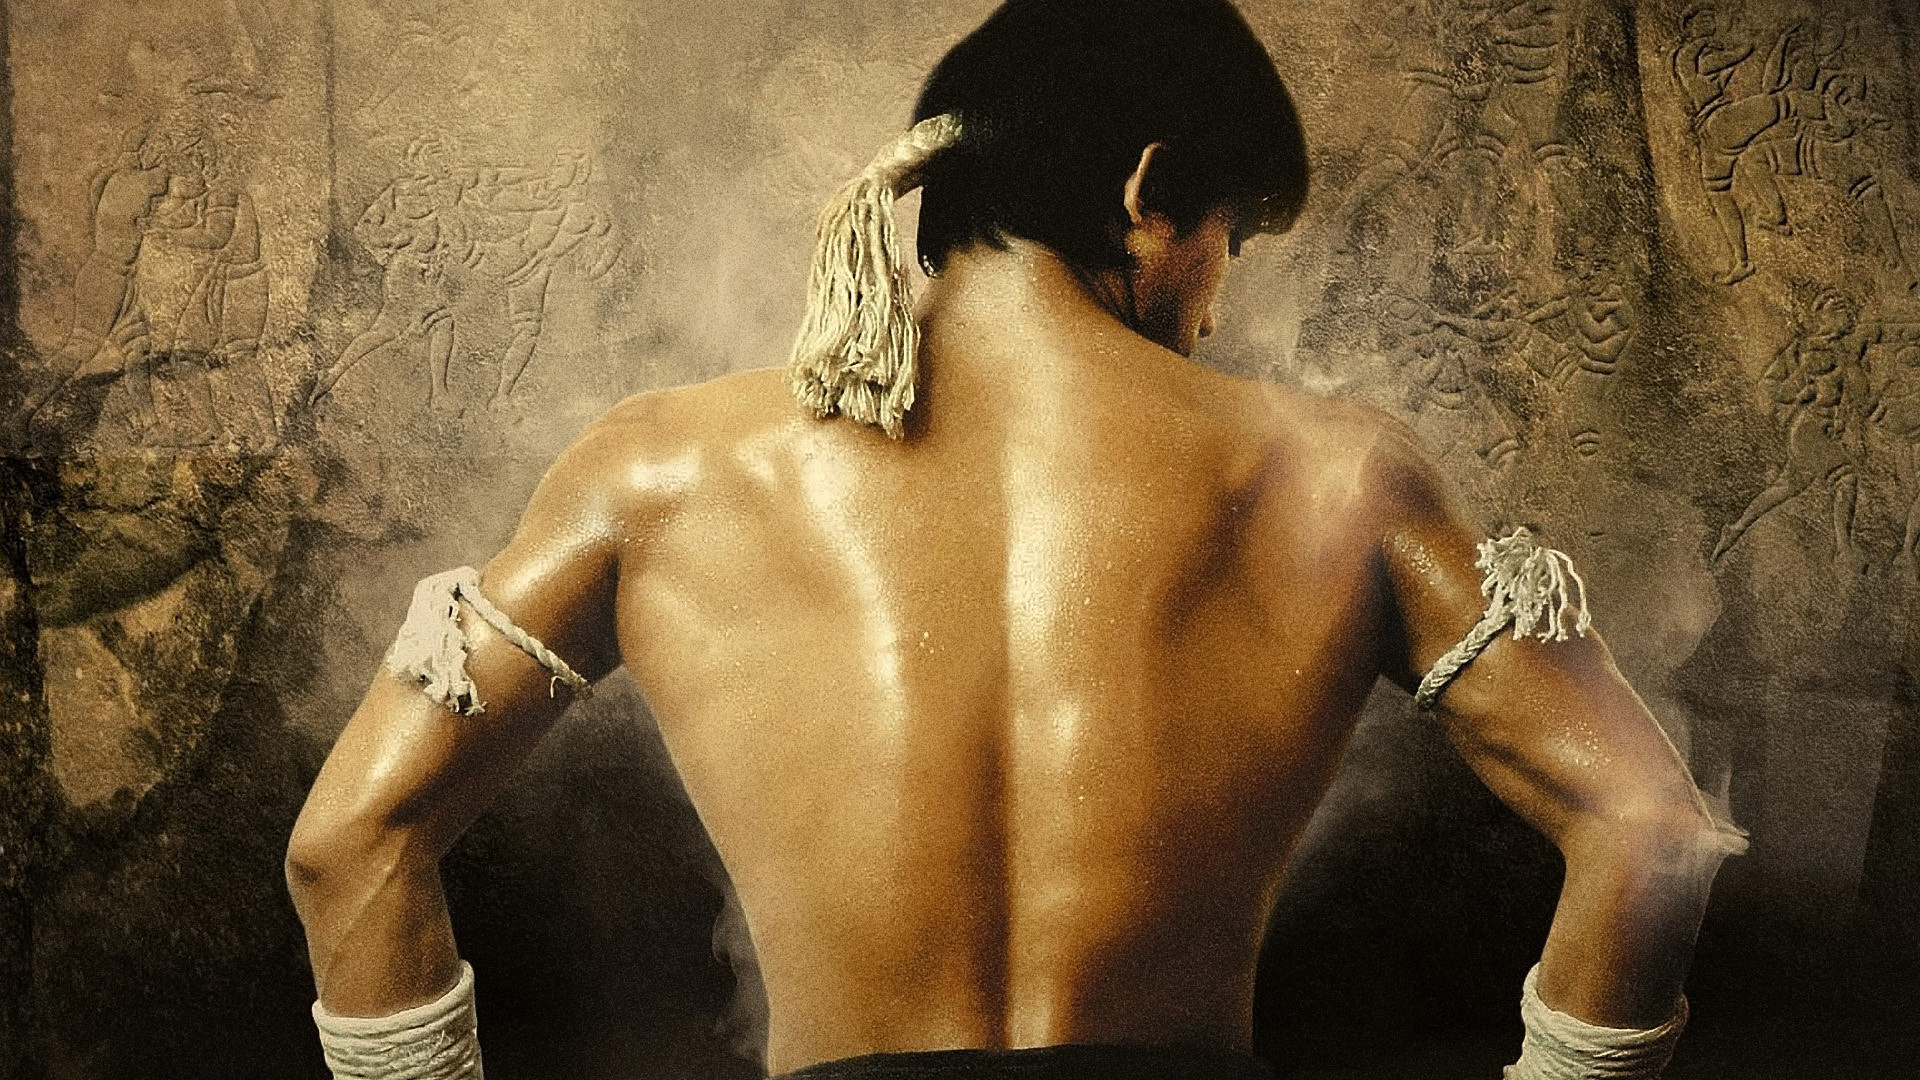 Tony Jaa Computer Wallpaper